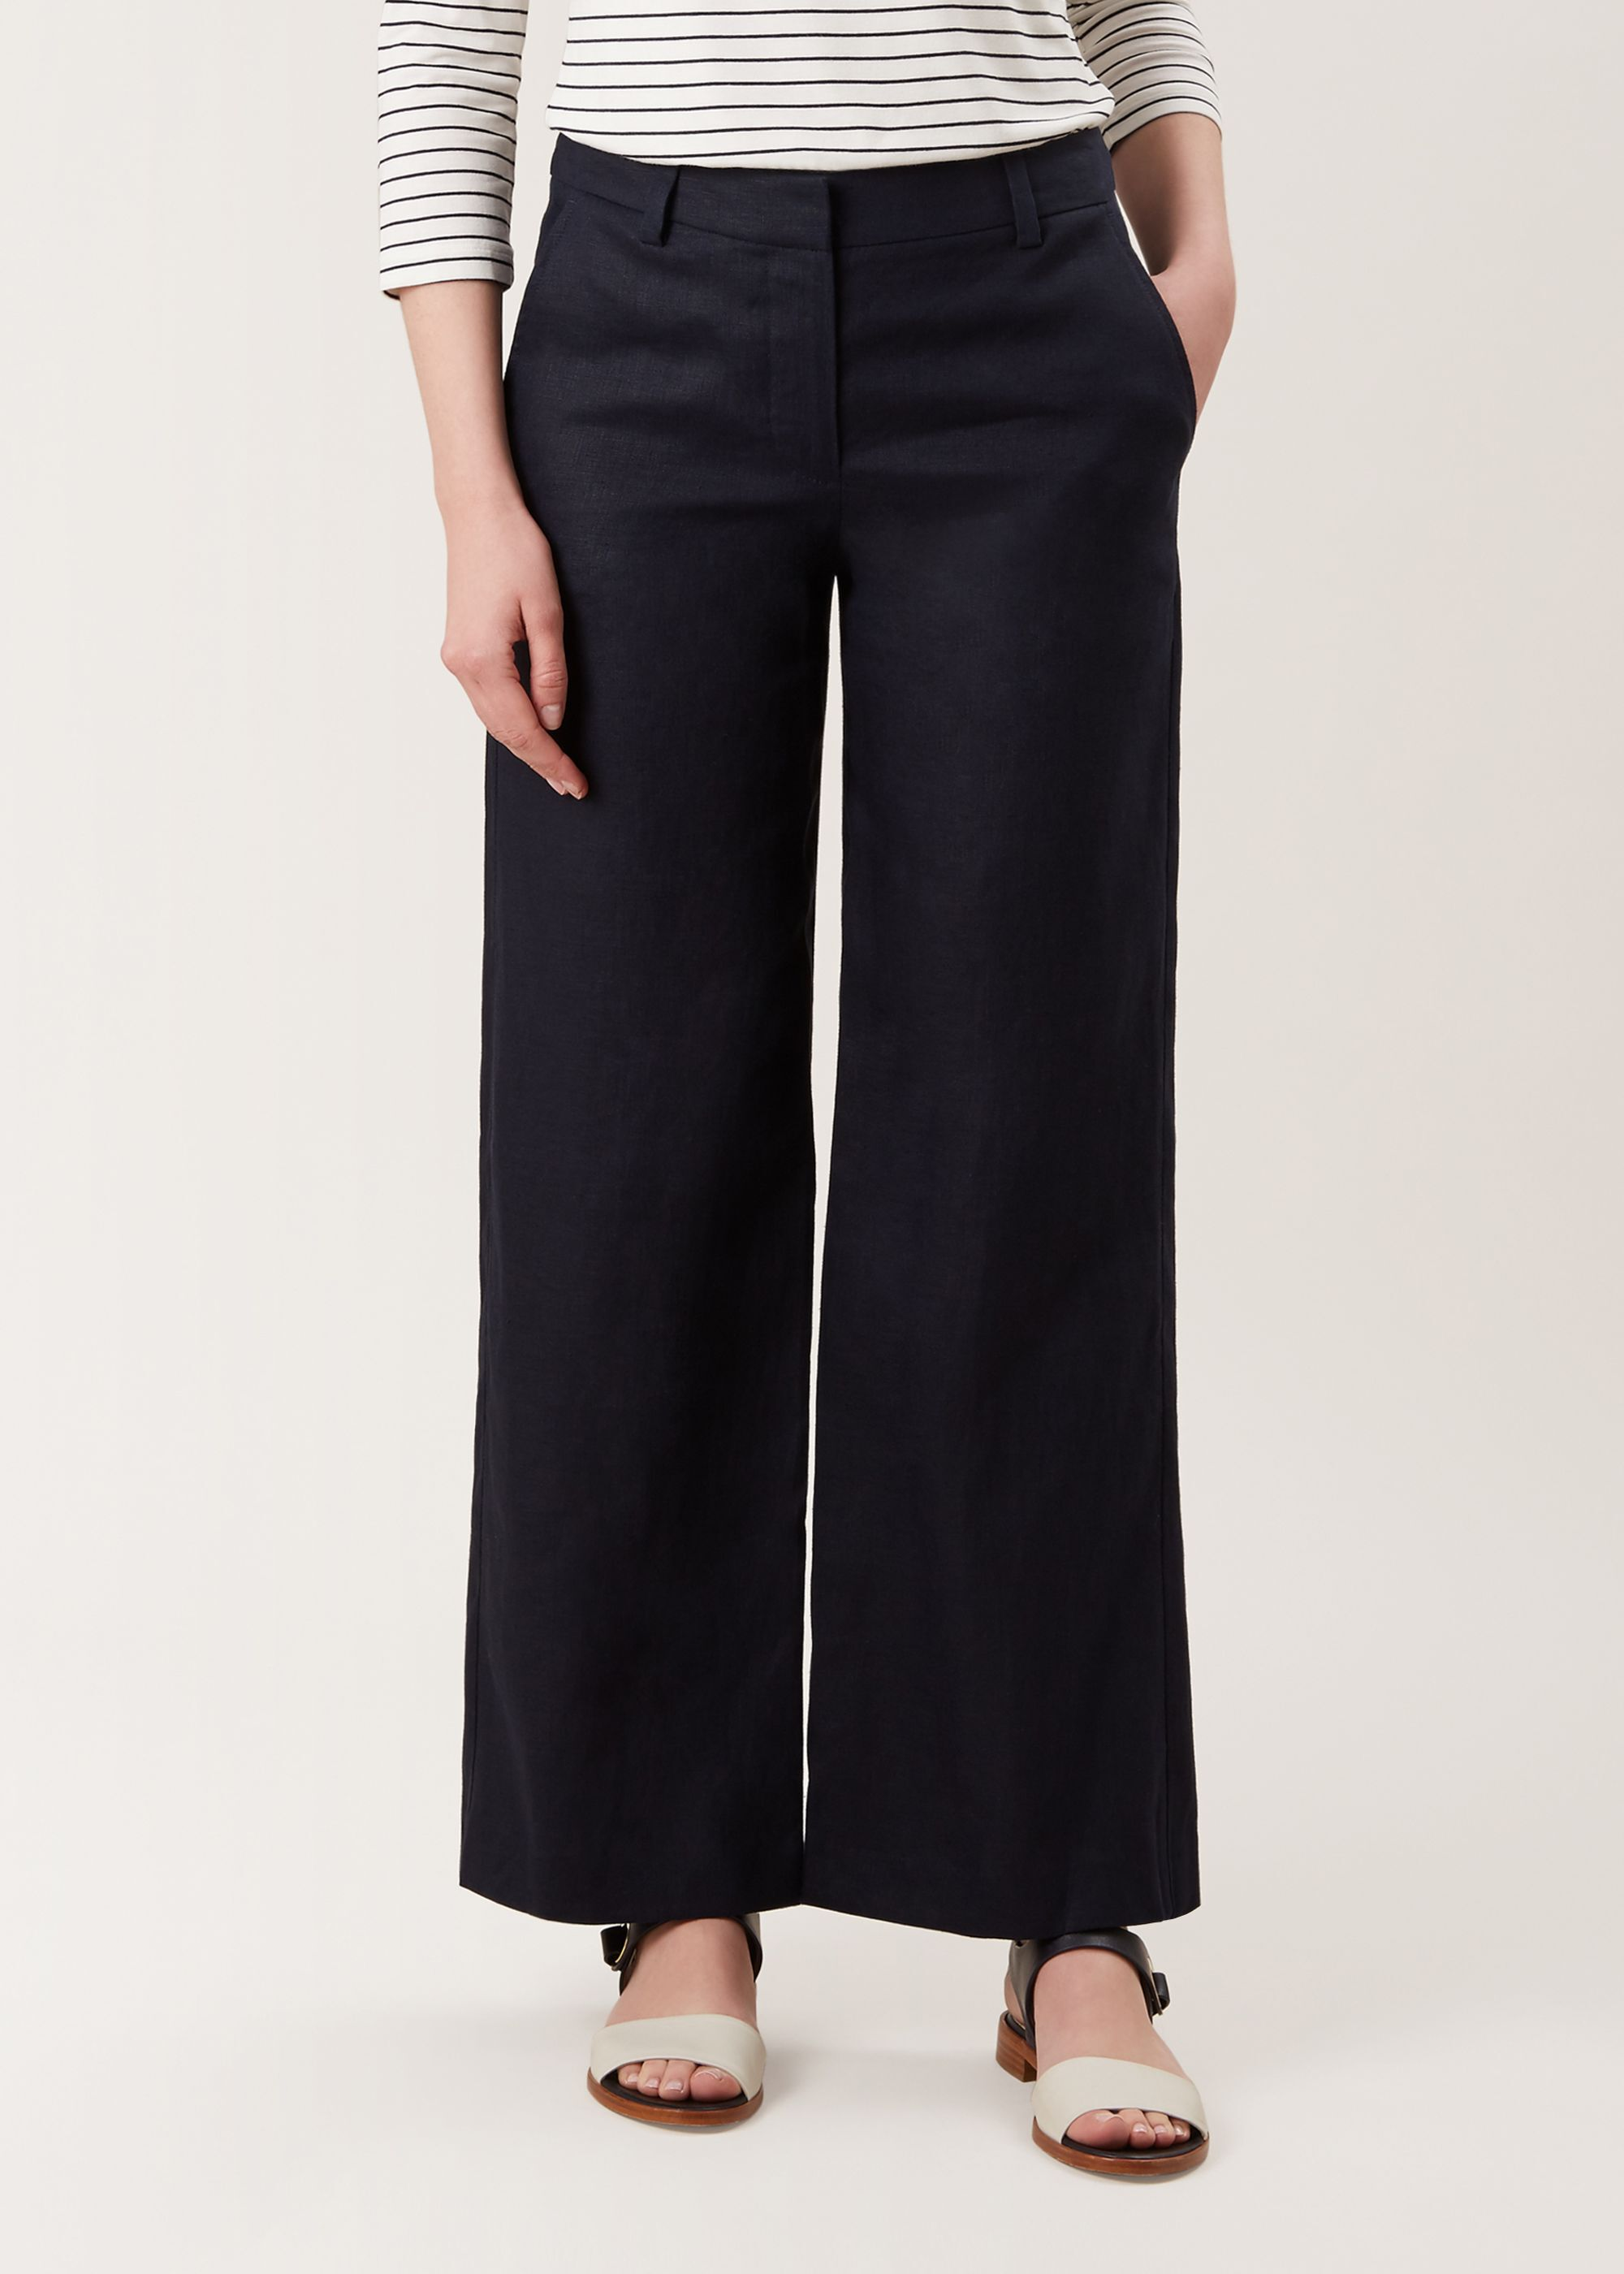 Quality Swedish Brand Womens Extra Long Navy Linen Trousers Size 6 8 10 12